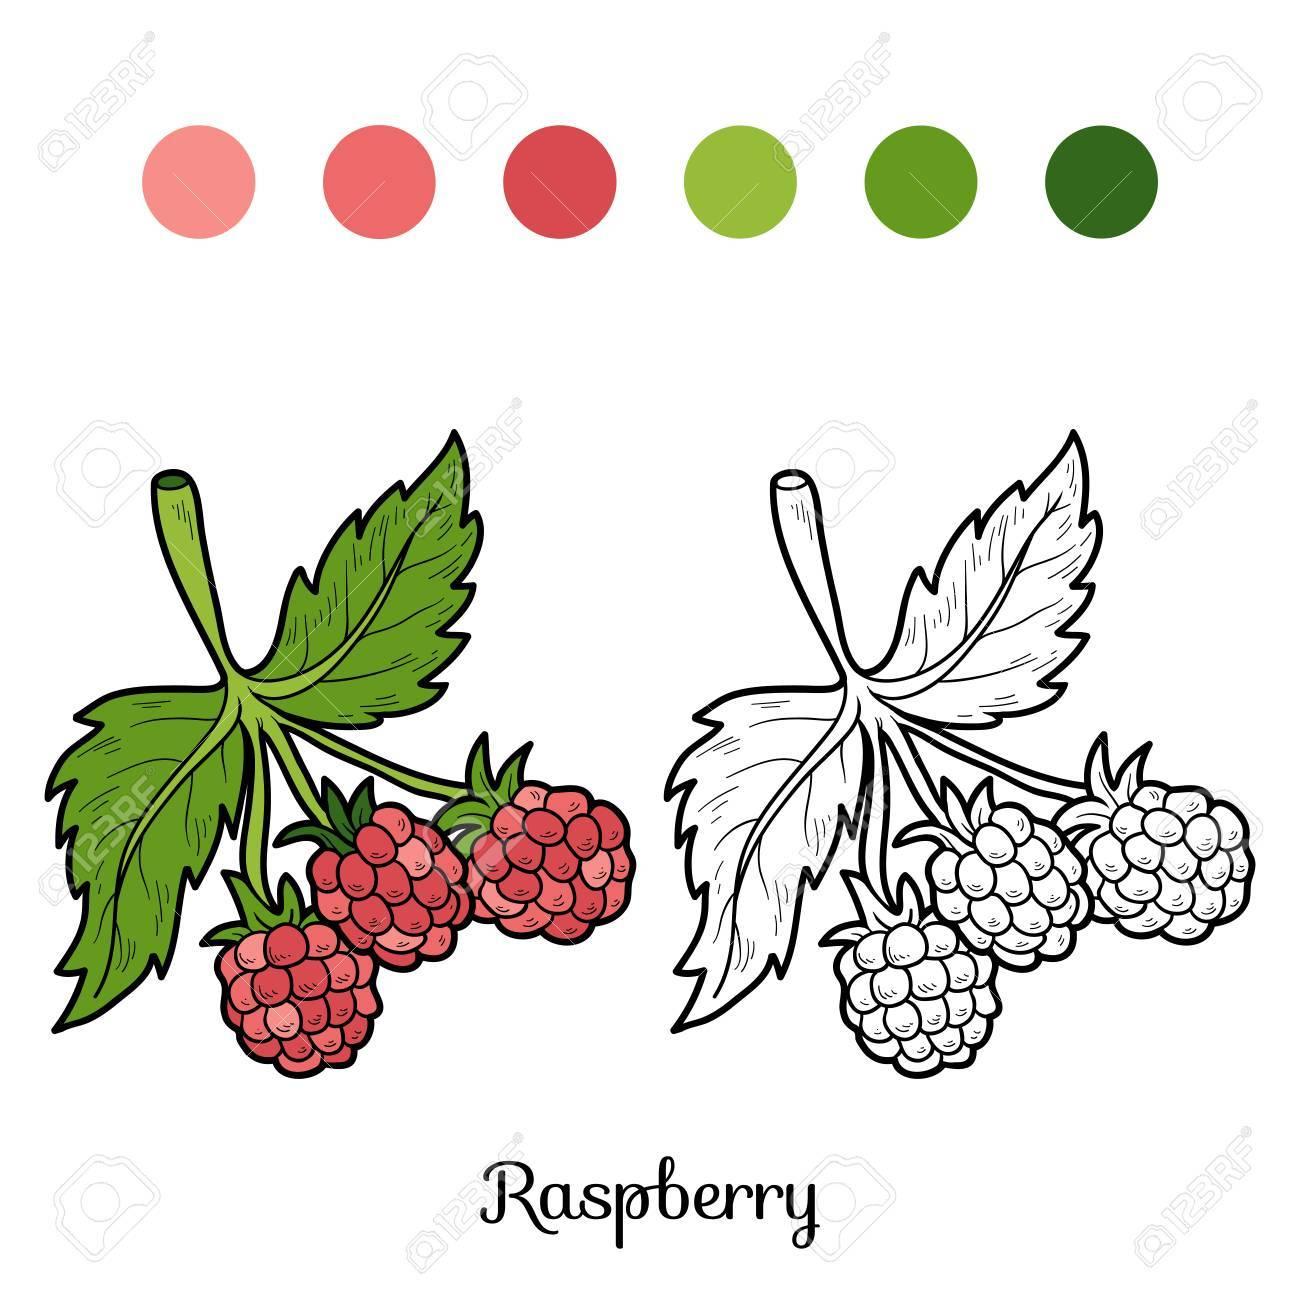 Coloring Book For Children Fruits And Vegetables Raspberry Stock Vector